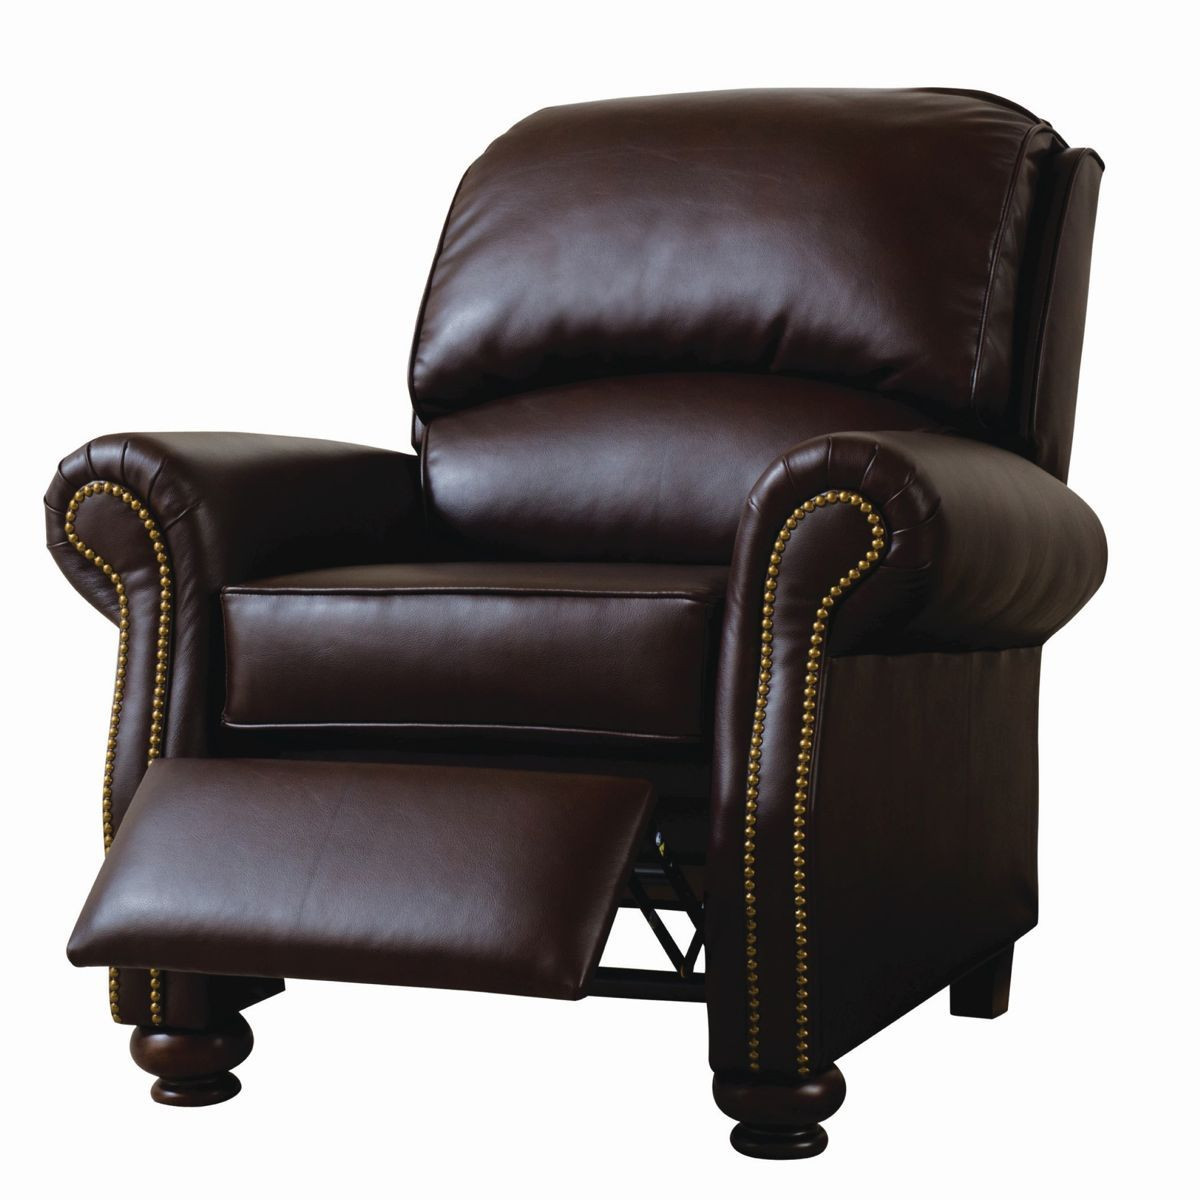 Leg Recliner Chocolate  sc 1 st  Furniture Clearance Center : recliners on clearance - islam-shia.org